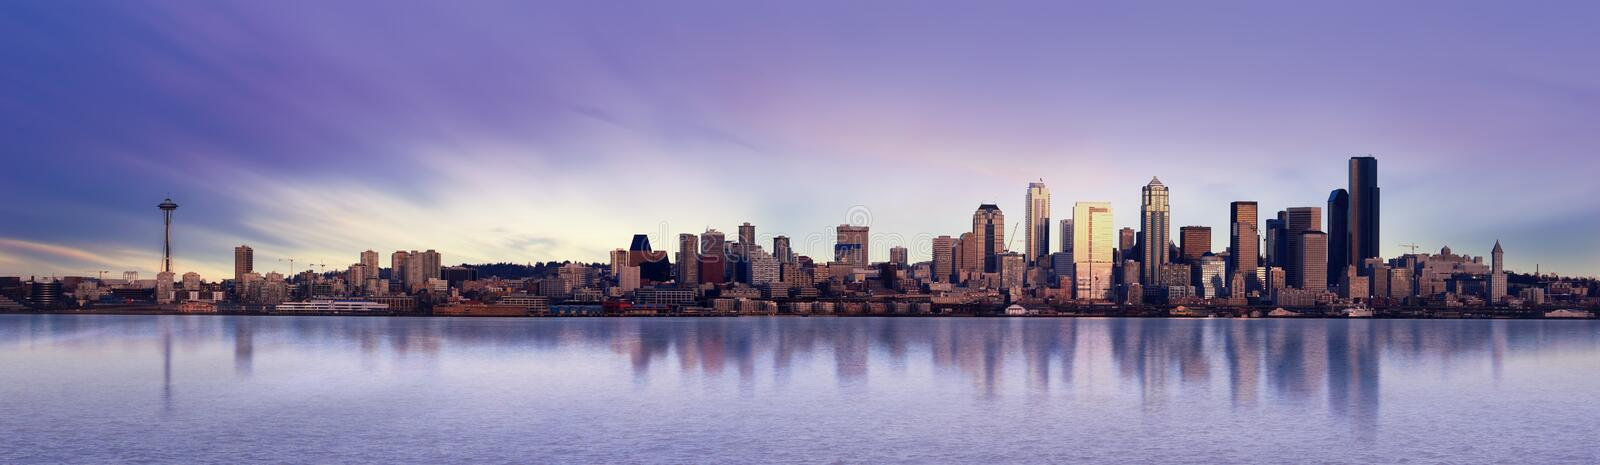 Seattle Panorama. Panoramic Image of the city of Seattle at sunset